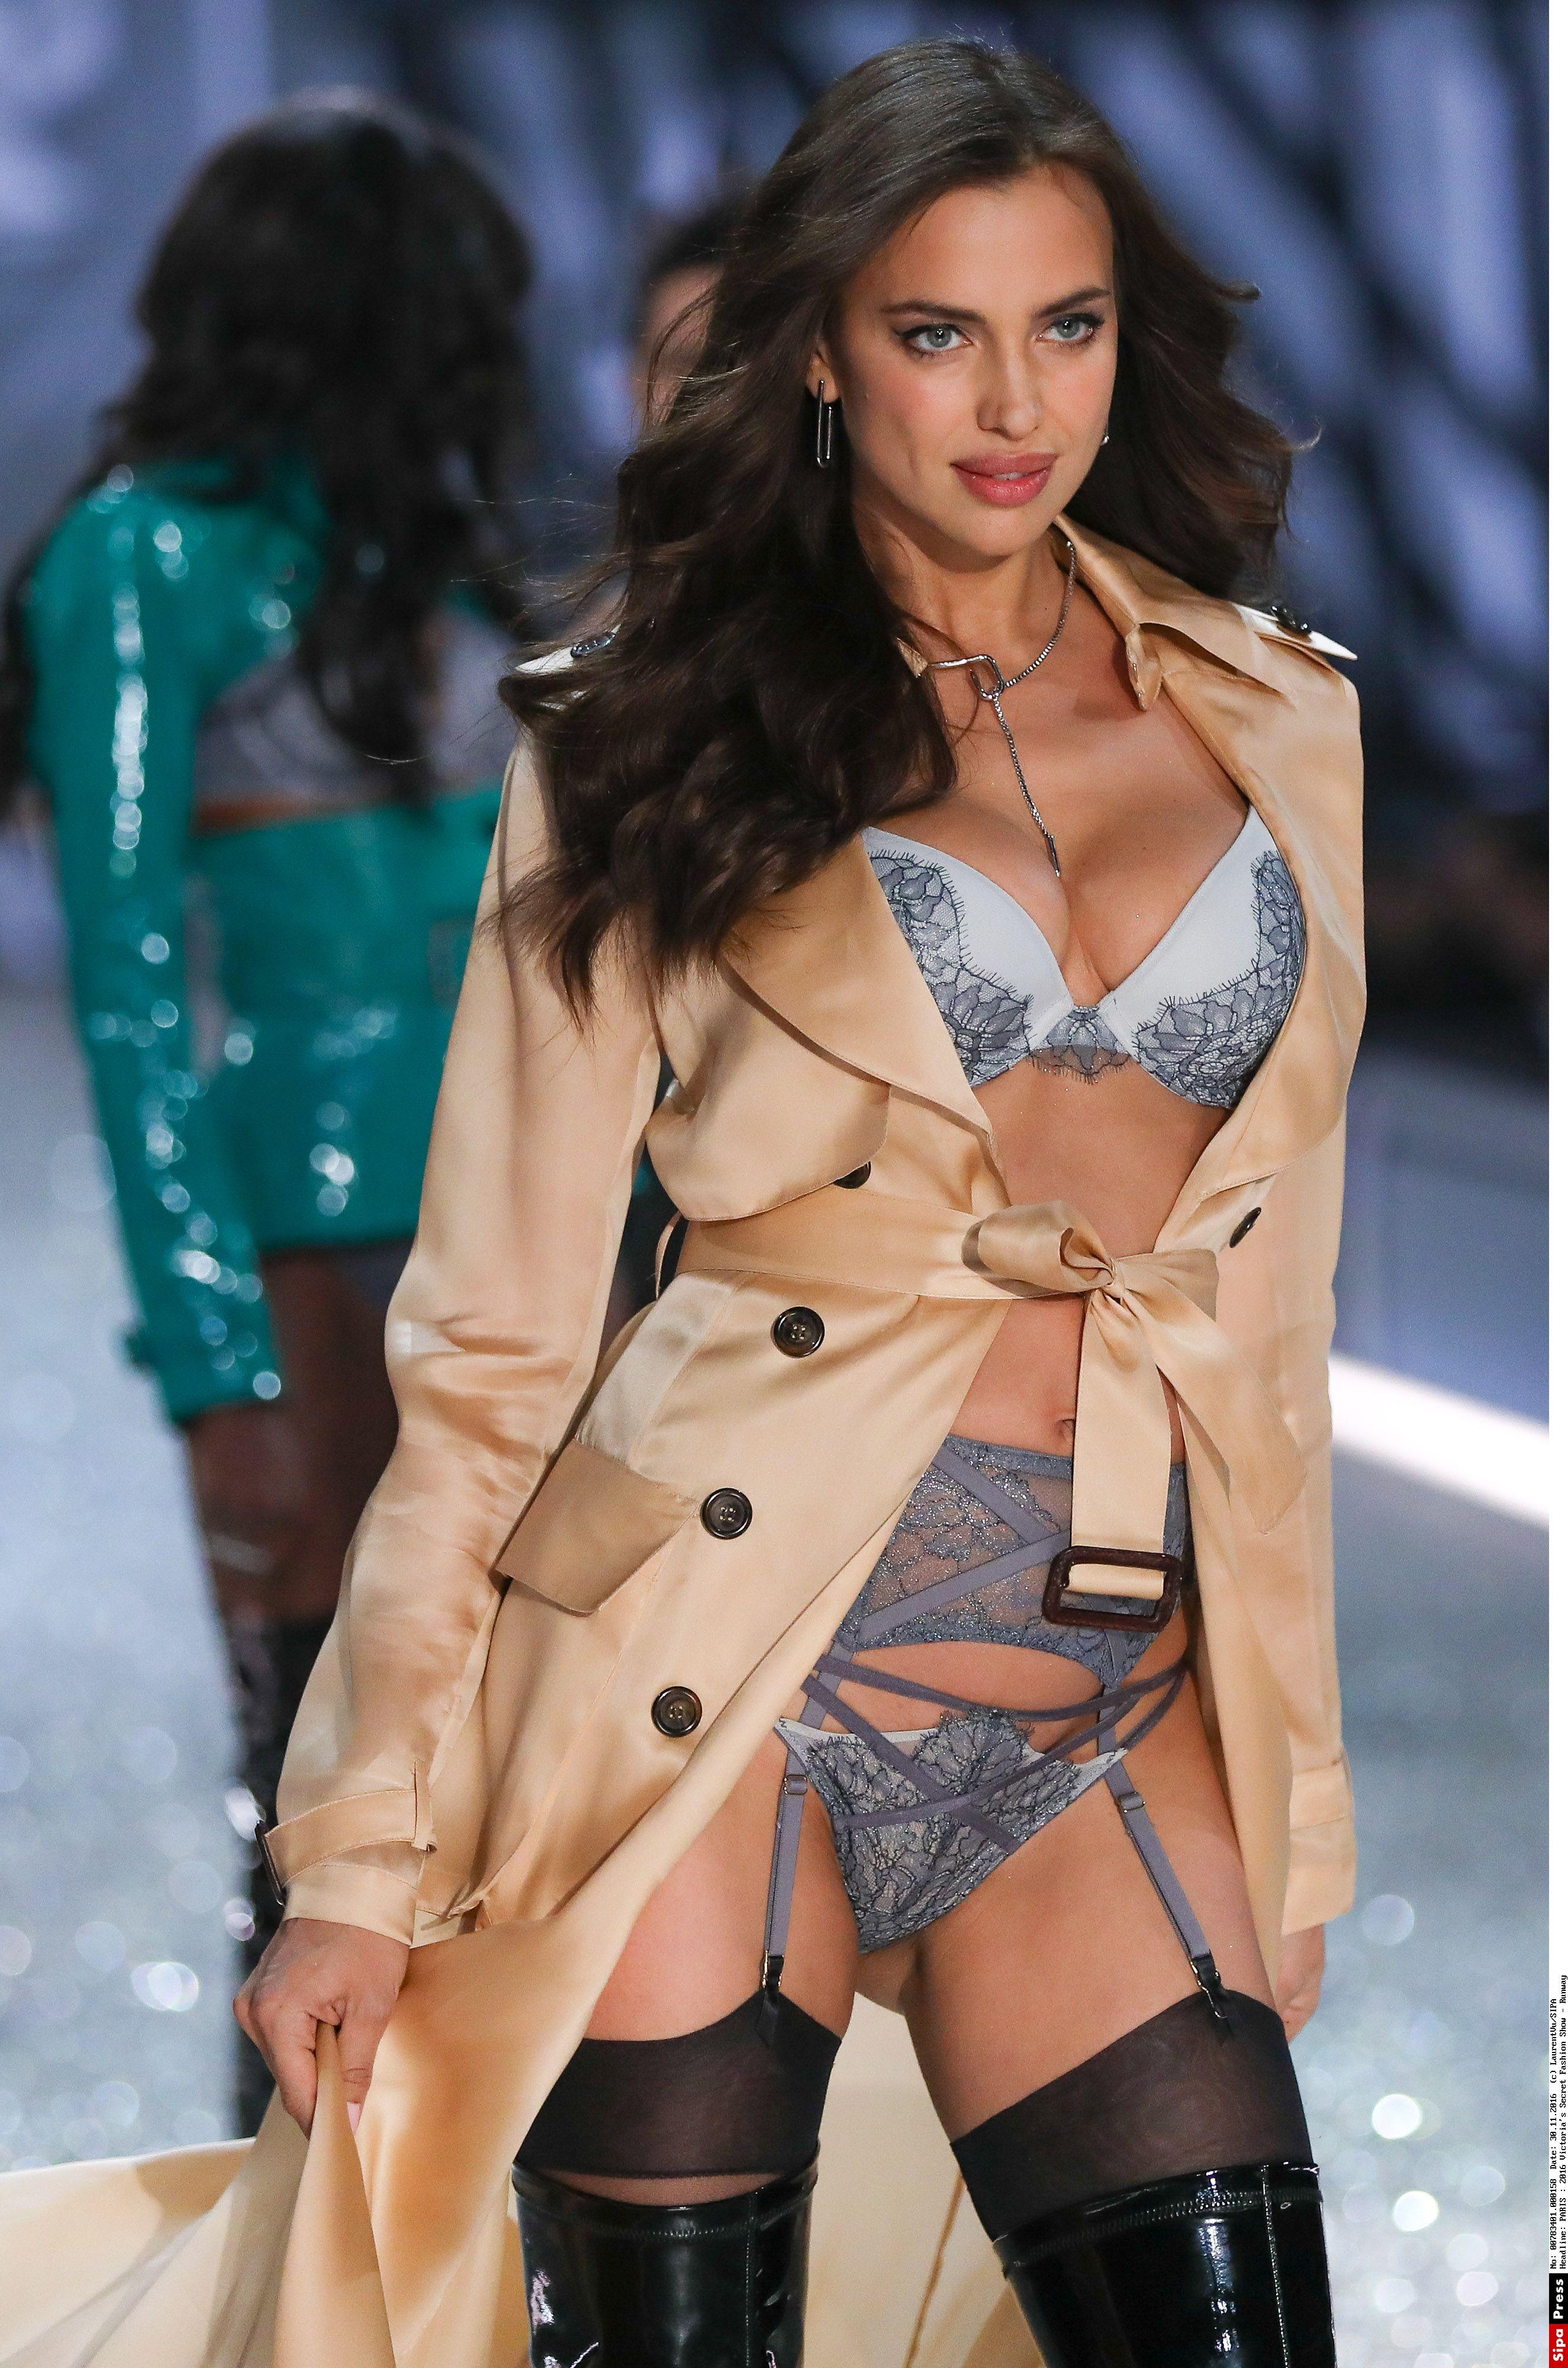 Irina Shayk walks the runway as The Weeknd performs at the Victoria's Secret Fashion Show at the Grand Palais in Paris, FRANCE - 30/11/2016.//PLV_VU_116253/Credit:LaurentVu/SIPA/1612010435, Image: 307148822, License: Rights-managed, Restrictions: , Model Release: no, Credit line: Profimedia, TEMP Sipa Press